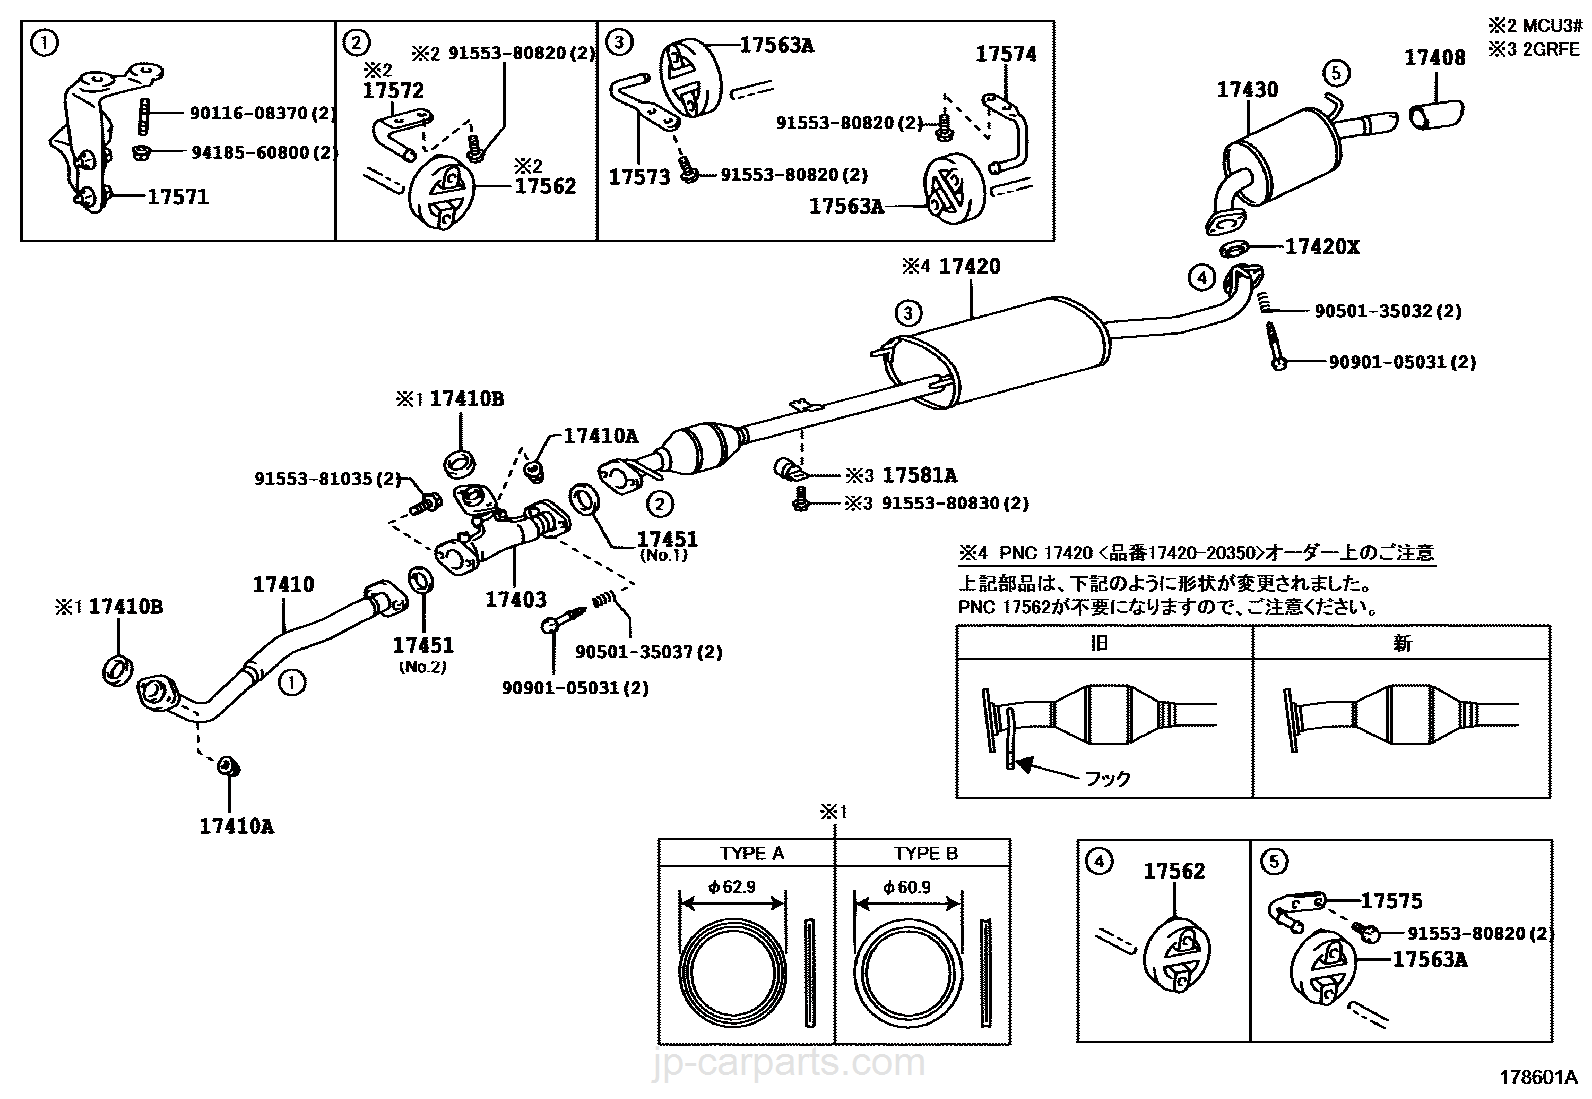 17574 20070 Bracket Exhaust Pipe Support No4 Harrier Toyota Engine Diagram Parts Detail